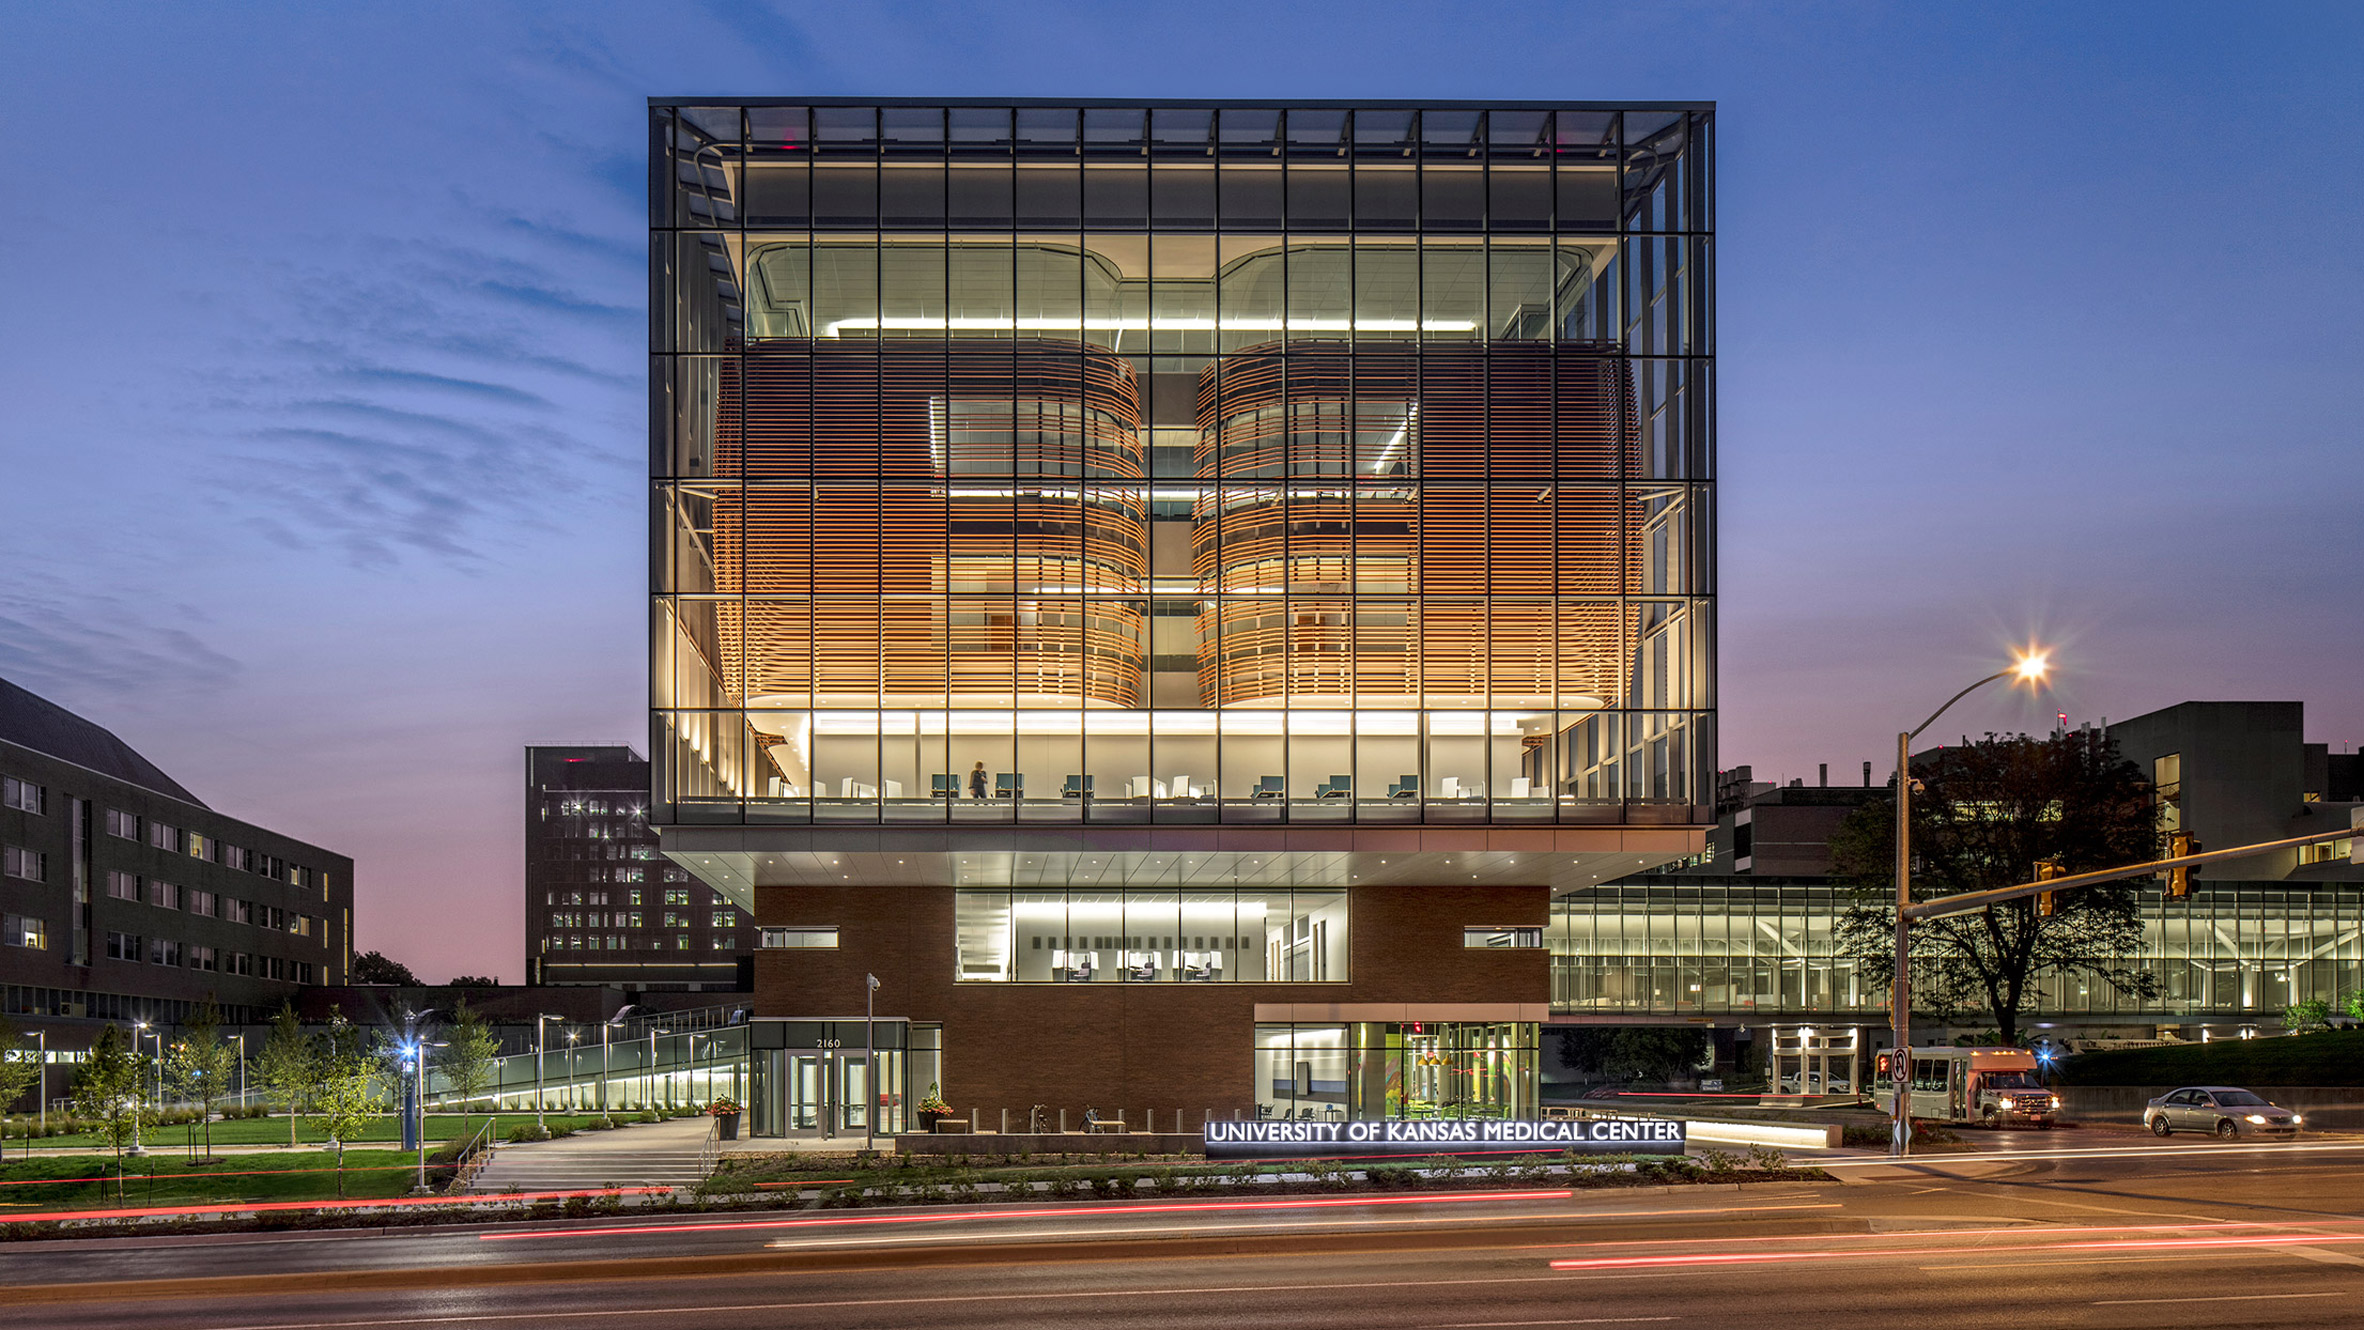 medical-center-university-of-kansas-co-architects-architecture-kansas-city-usa_dezeen_2364_hero2-852x479.jpg